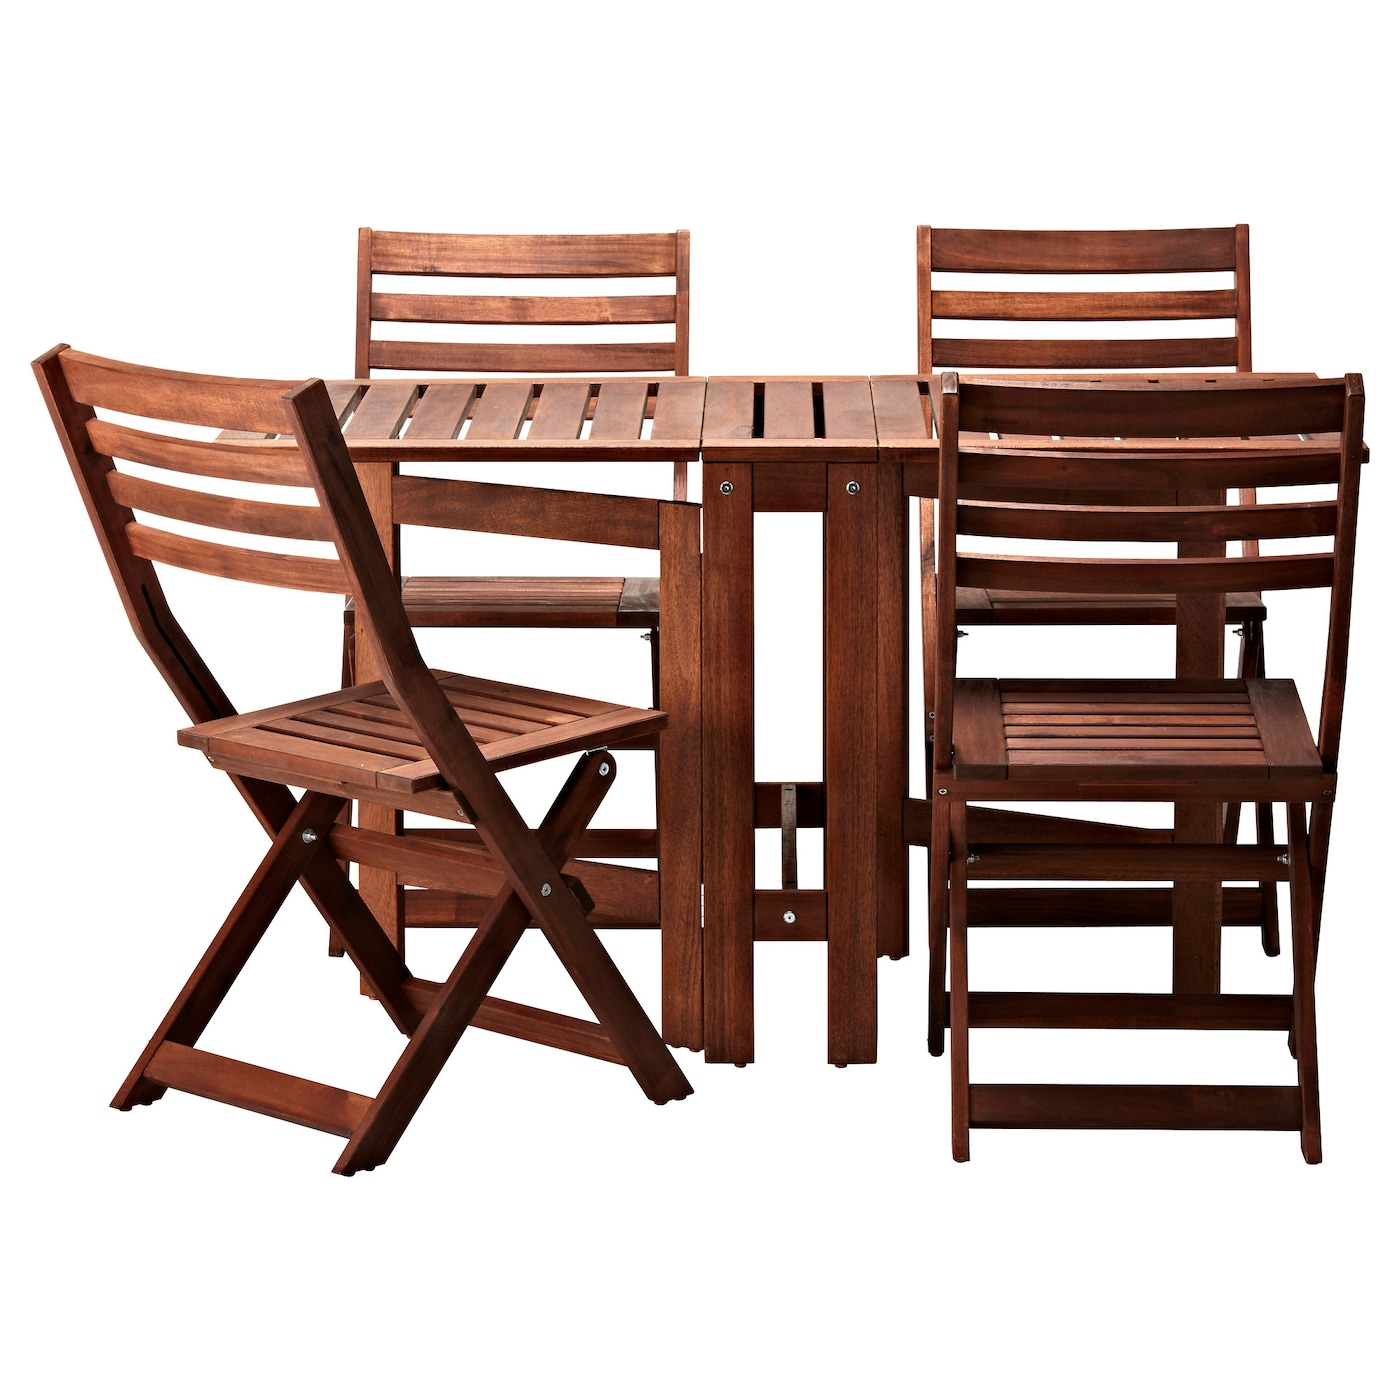 ikea outdoor patio furniture. ikea pplar table4 folding chairs outdoor ikea patio furniture n